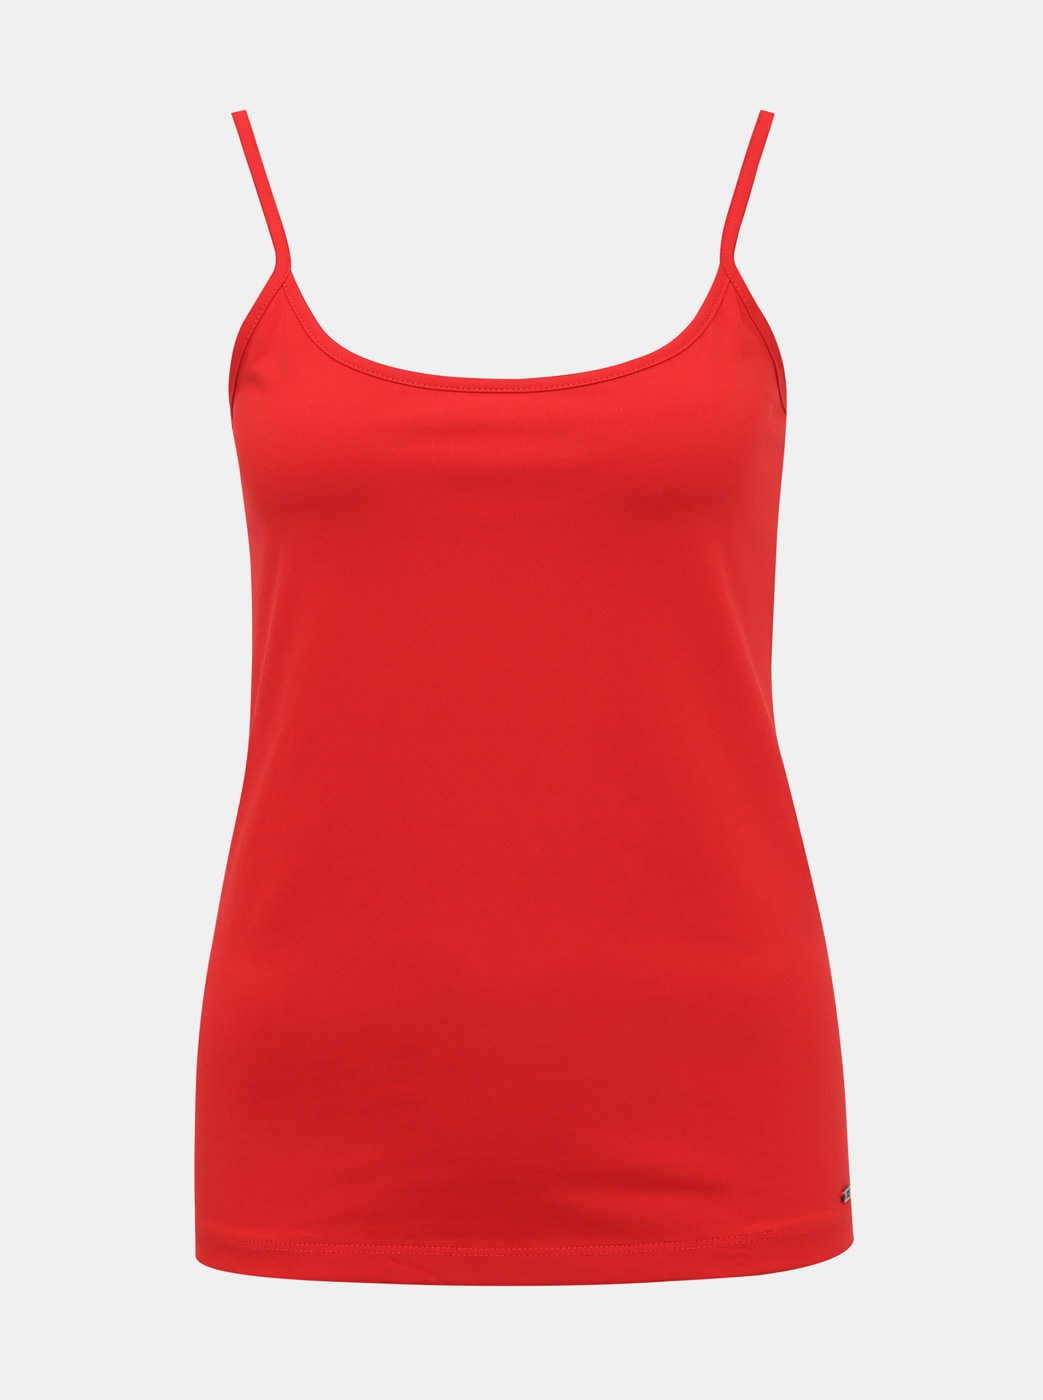 Red Women's Basic Tank Top ZOOT Baseline Stacey